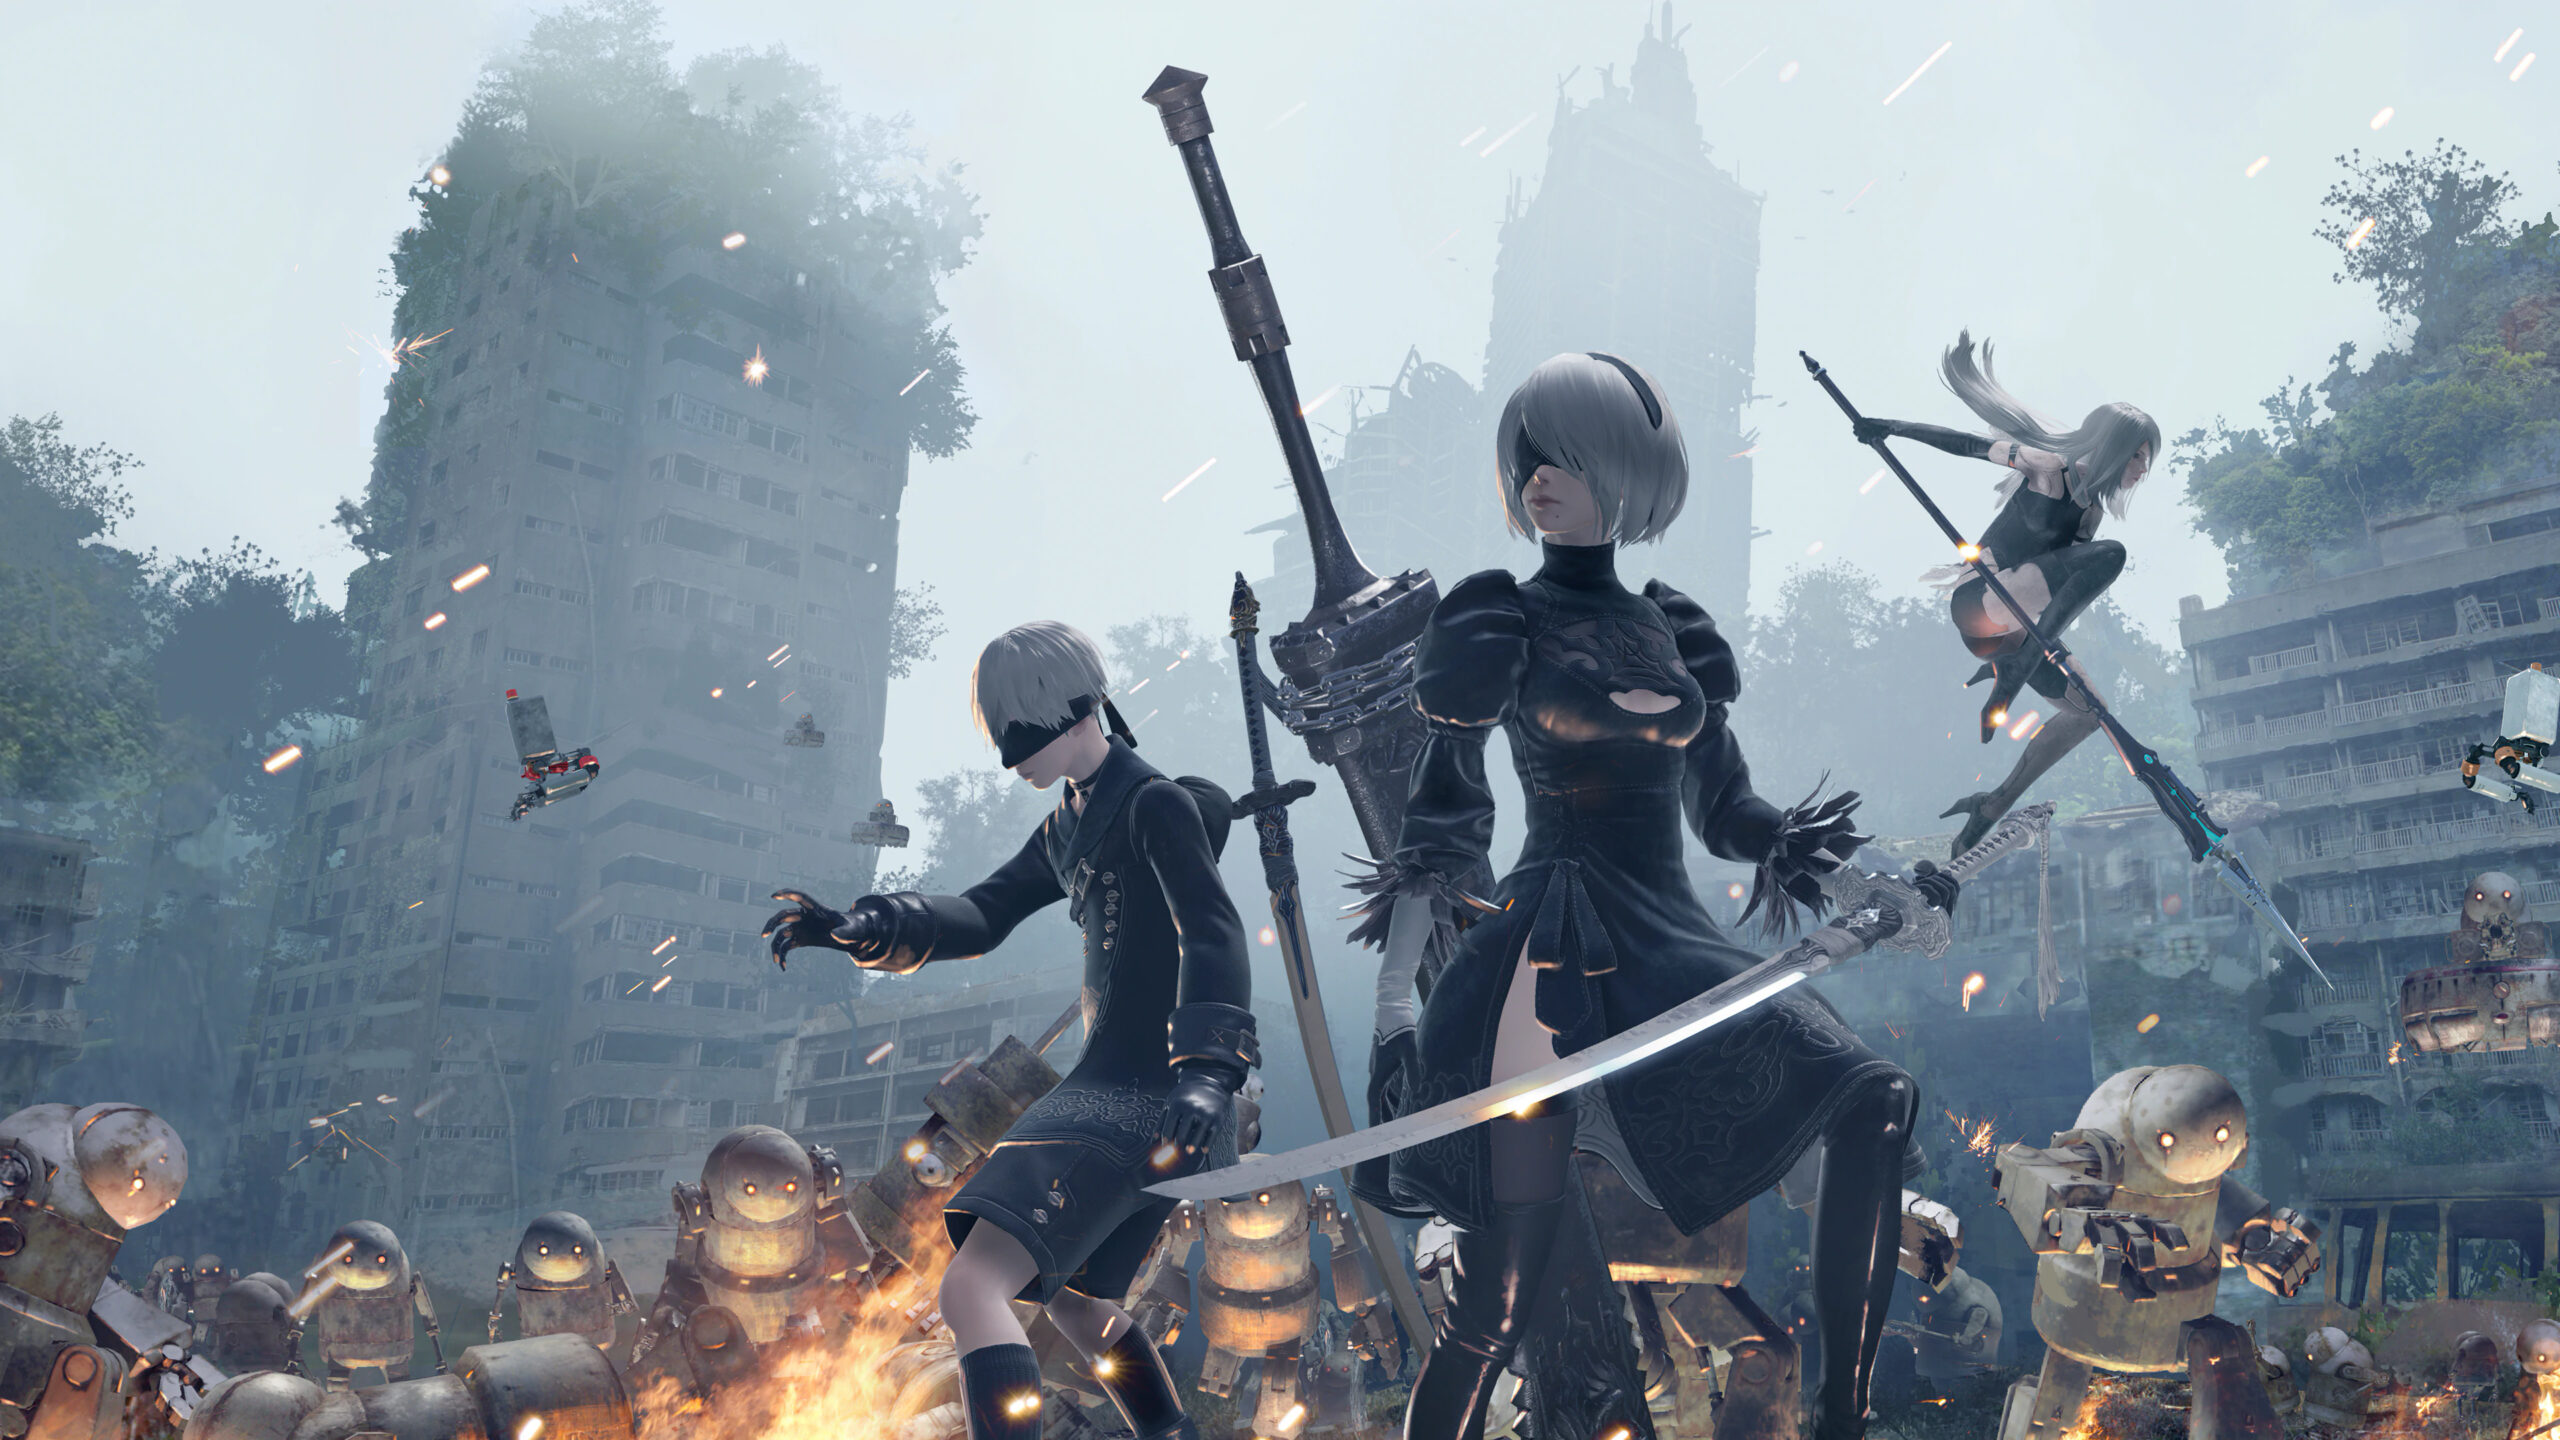 2B, A2, and 9S stand ready for battle from Nier Automata.